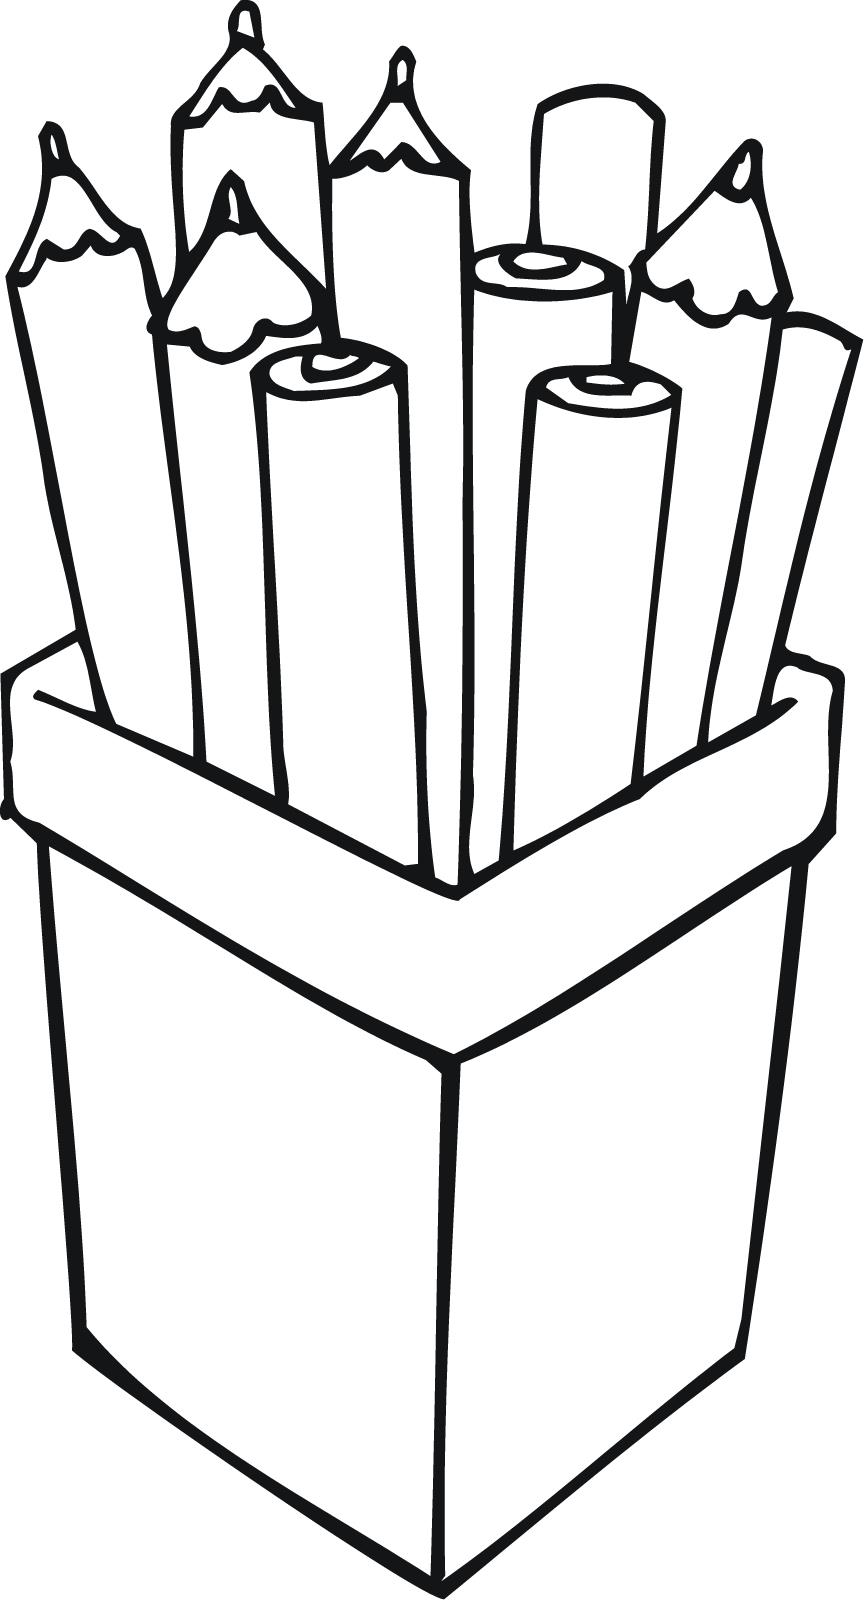 Pencil clipart container Printable a container Point pencils